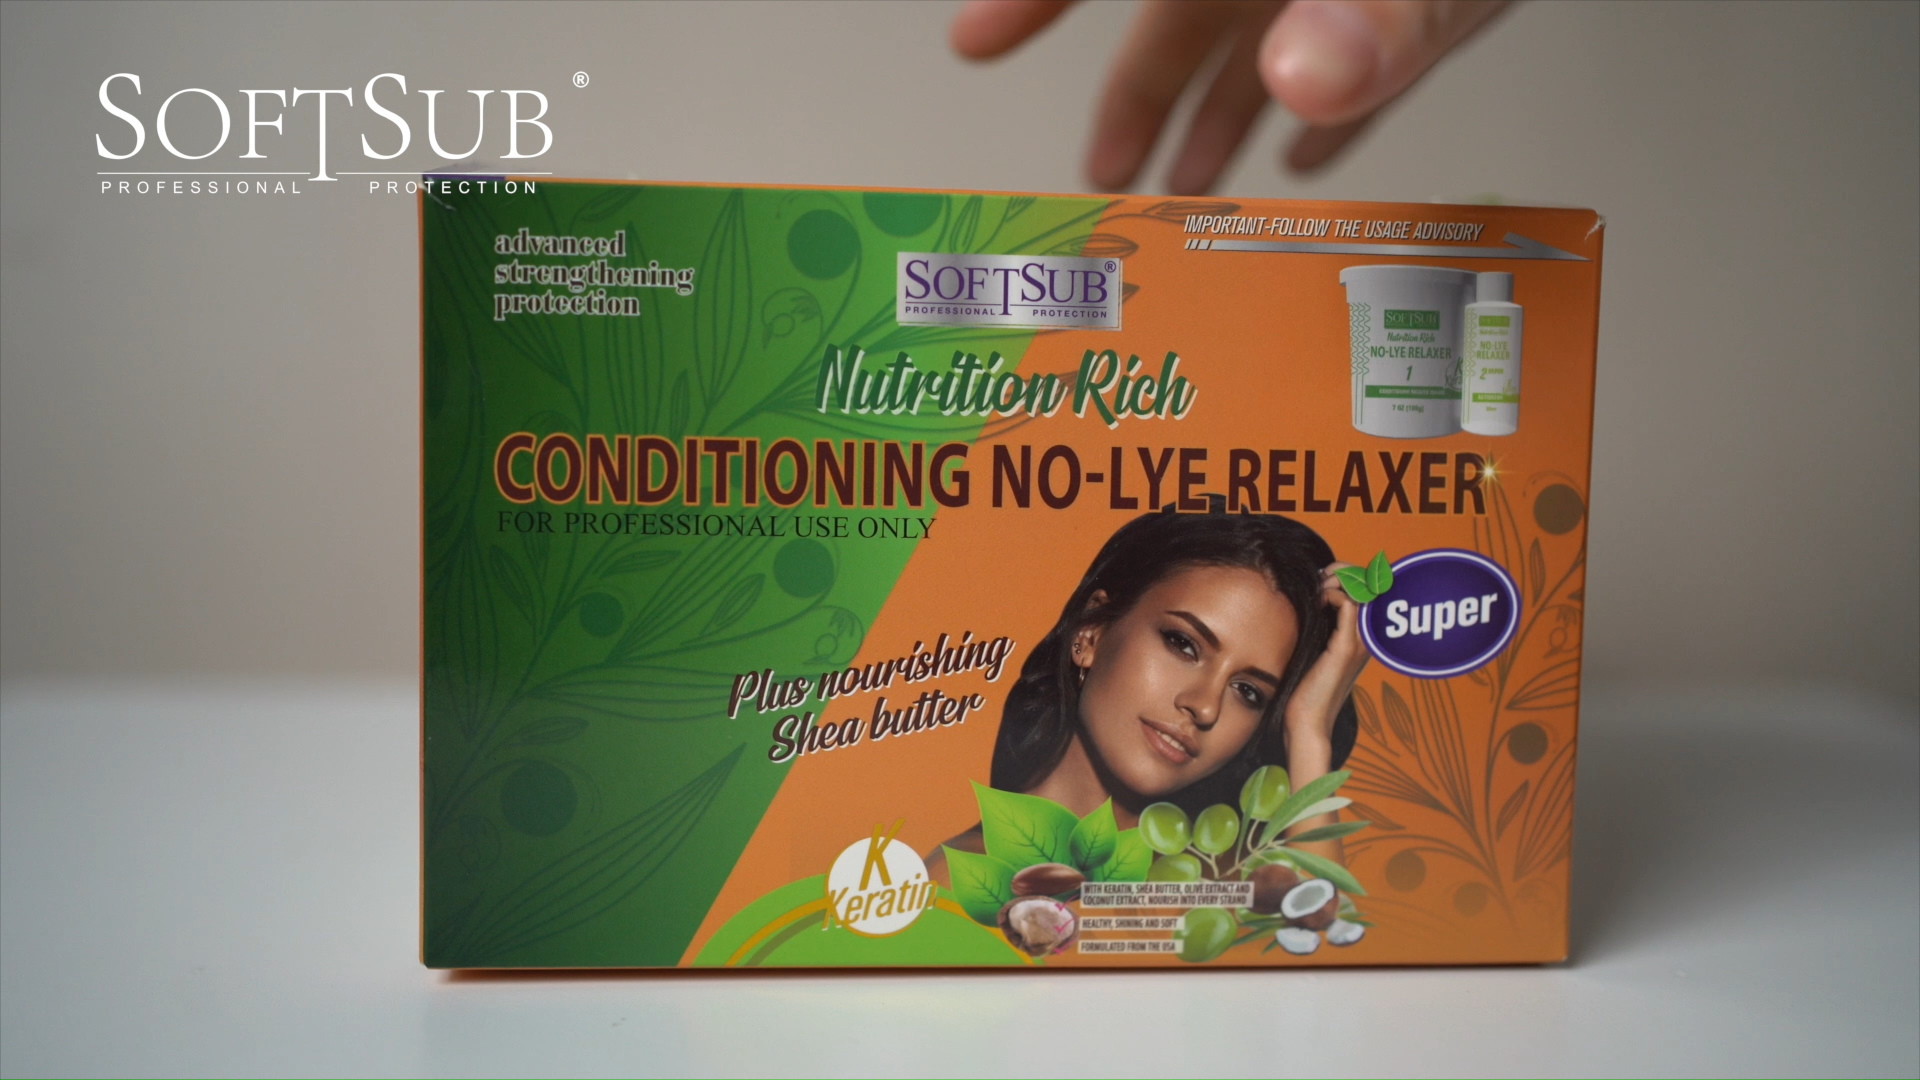 SOFTSUB Nutrition Rich Conditioning NO-LYE Relaxer